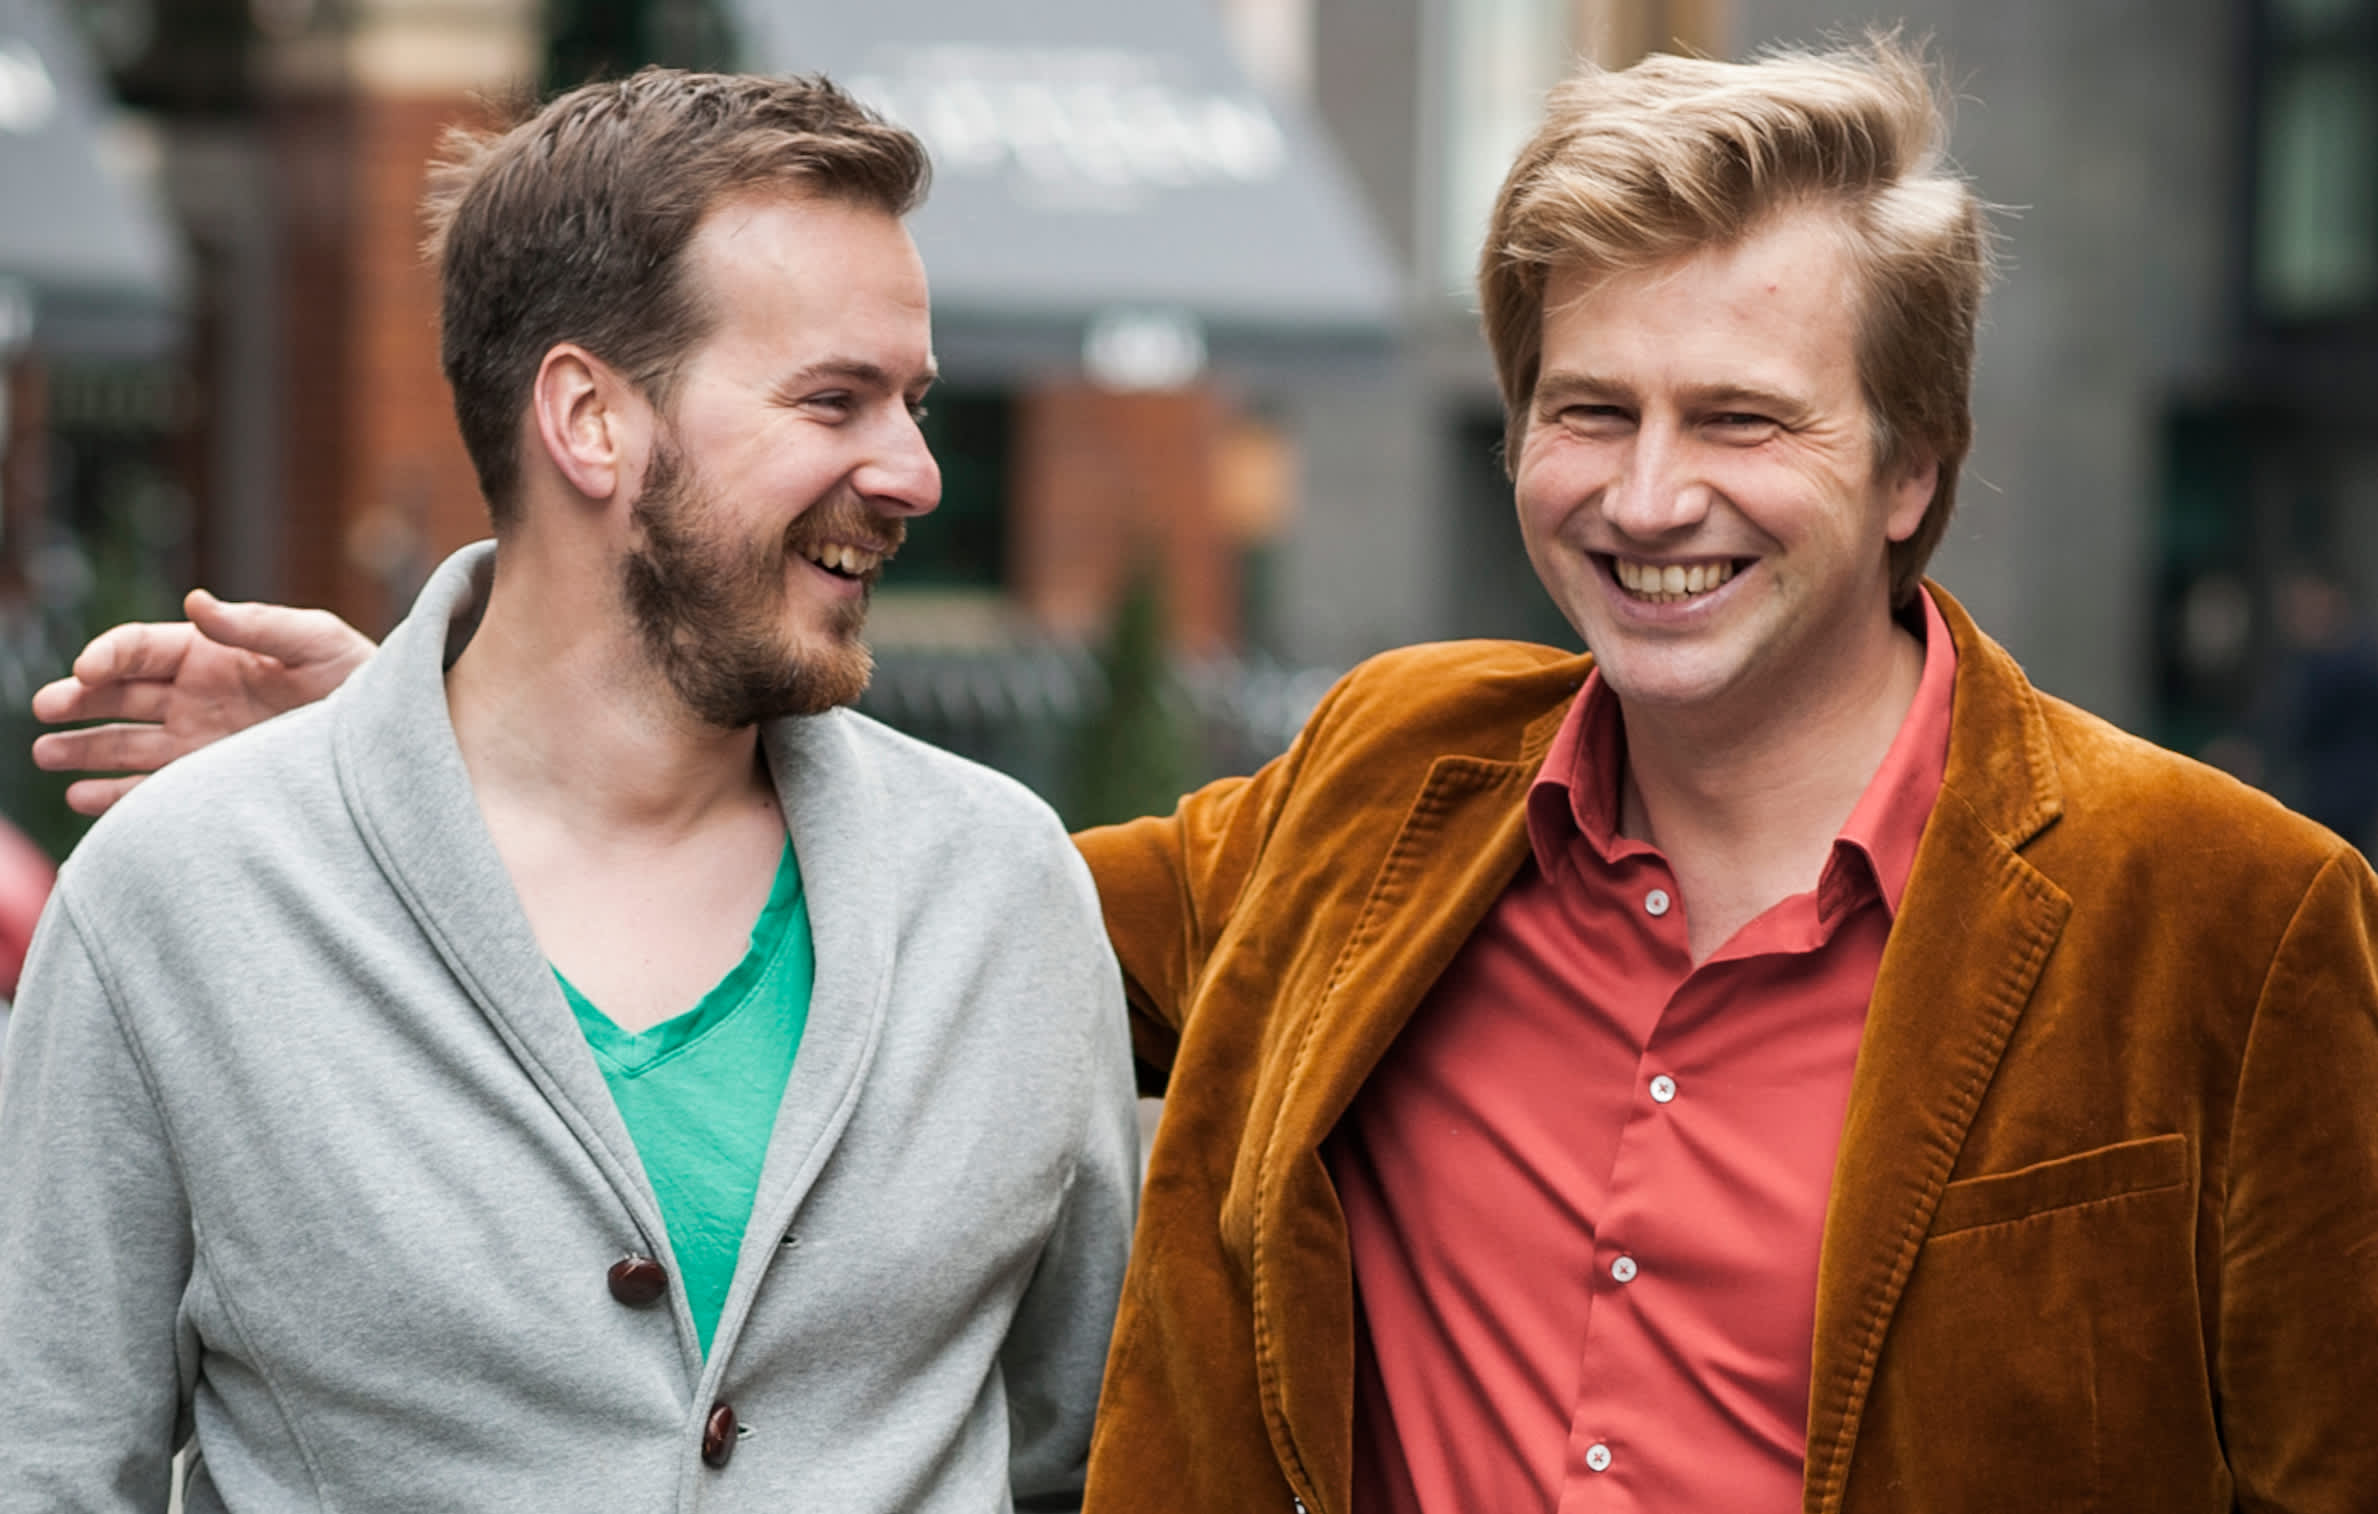 TransferWise is expanding in the Middle East with a new Abu Dhabi license